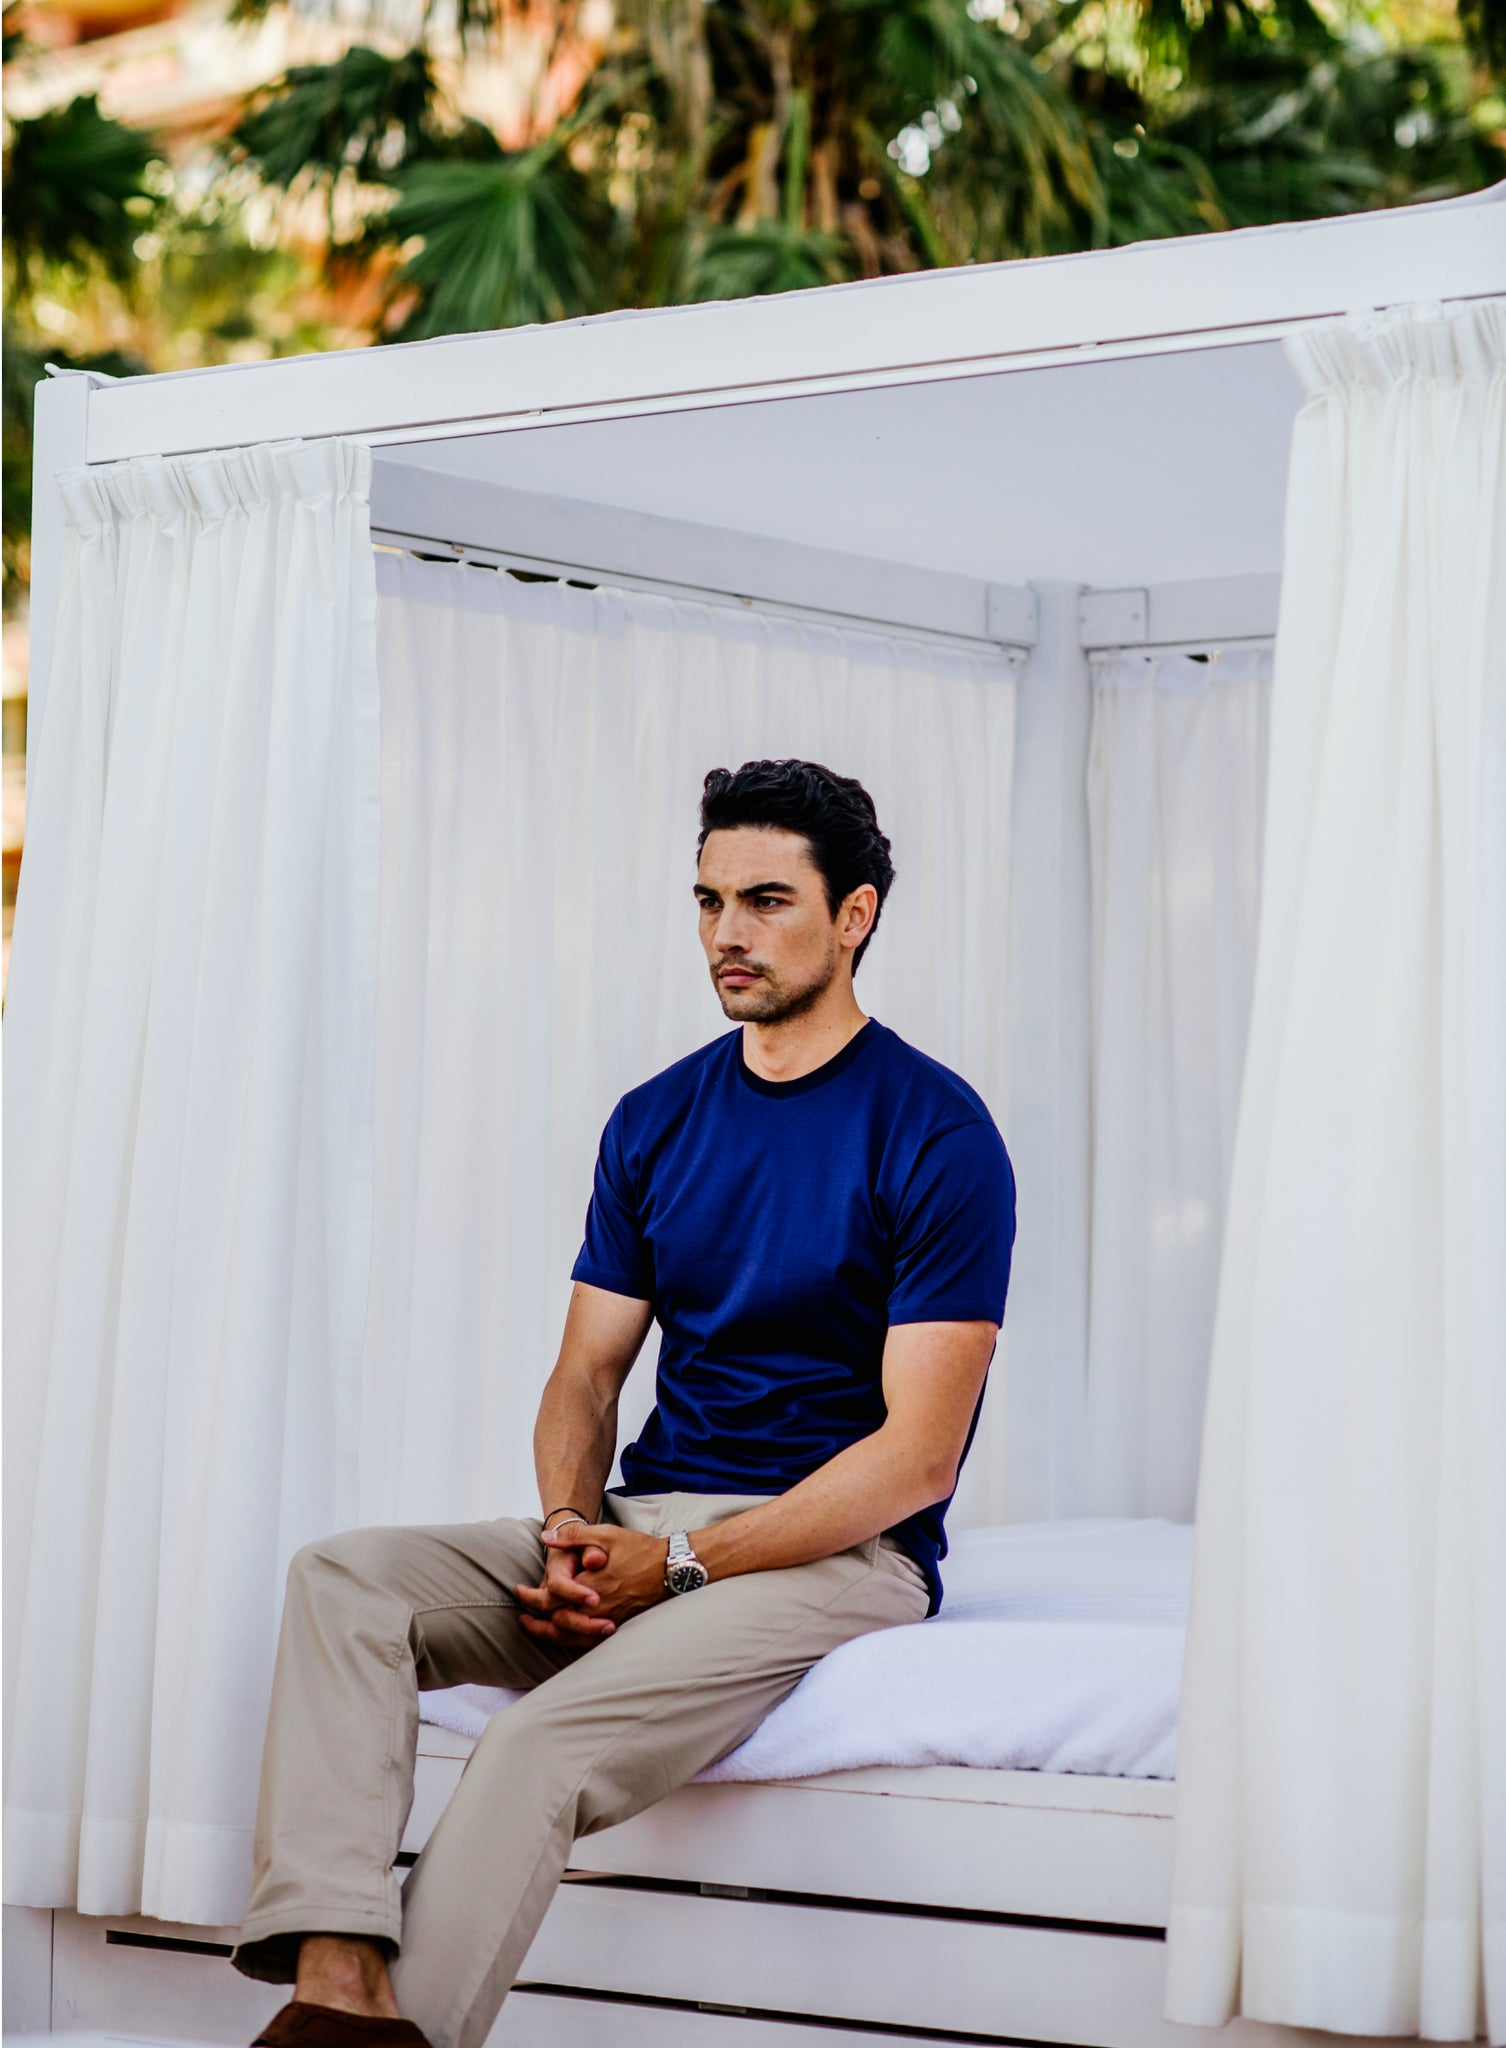 Blue T-Shirt, Cabana, Marbella by Niccolò P.